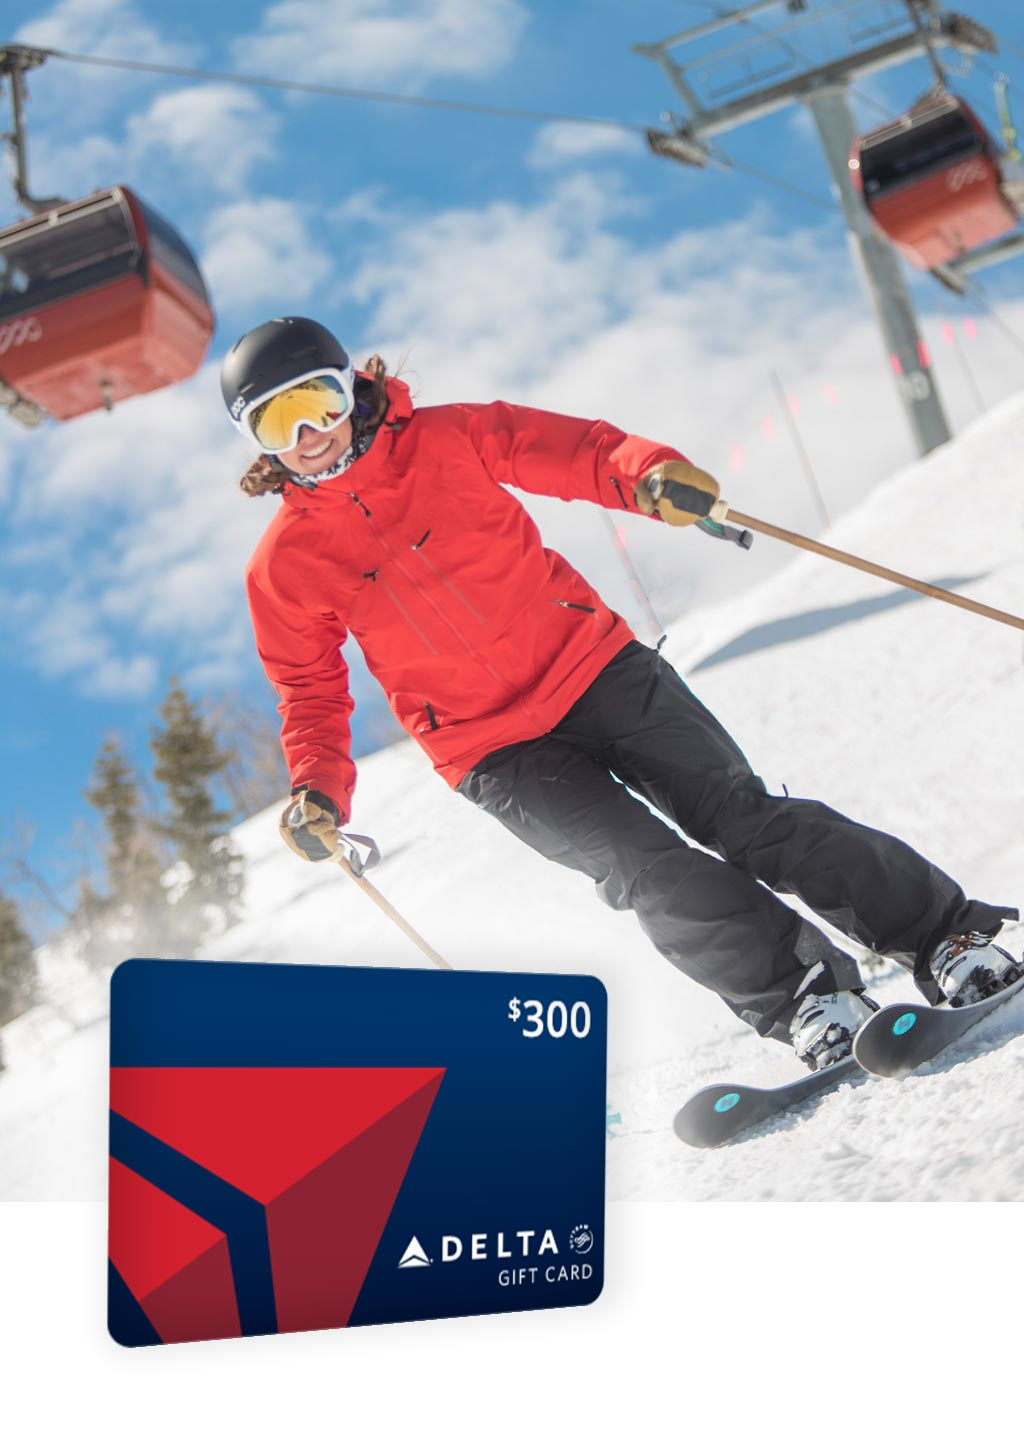 Delta Promo Image with Gift Card Overlaying Image of Female Skiier on Slopes in Park City